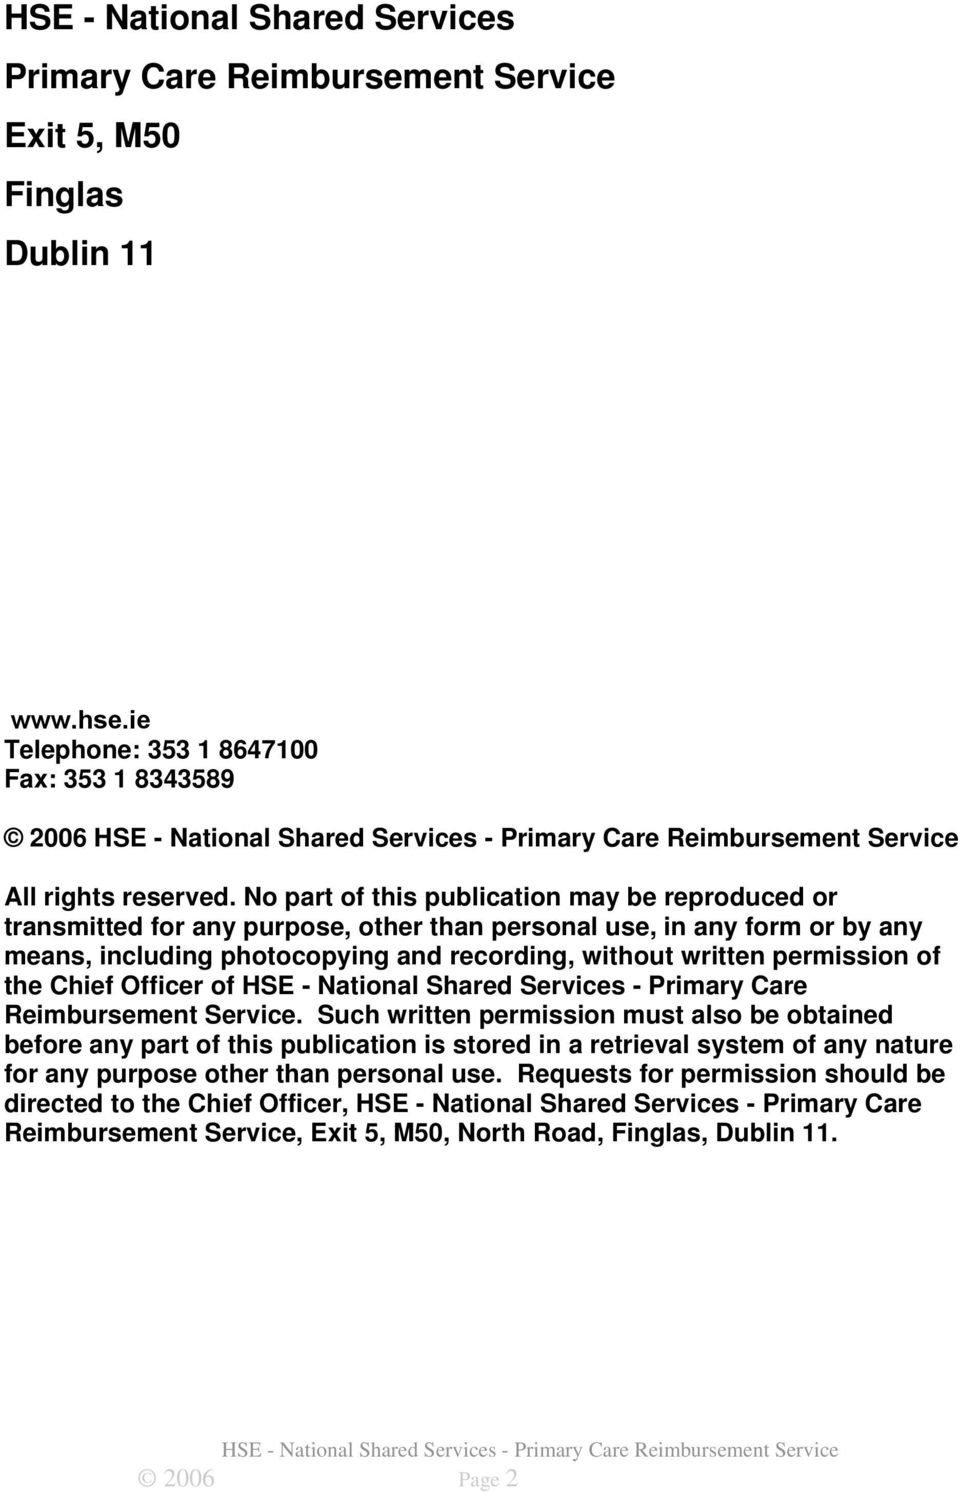 the Chief Officer of HSE - National Shared Services - Primary Care Reimbursement Service.